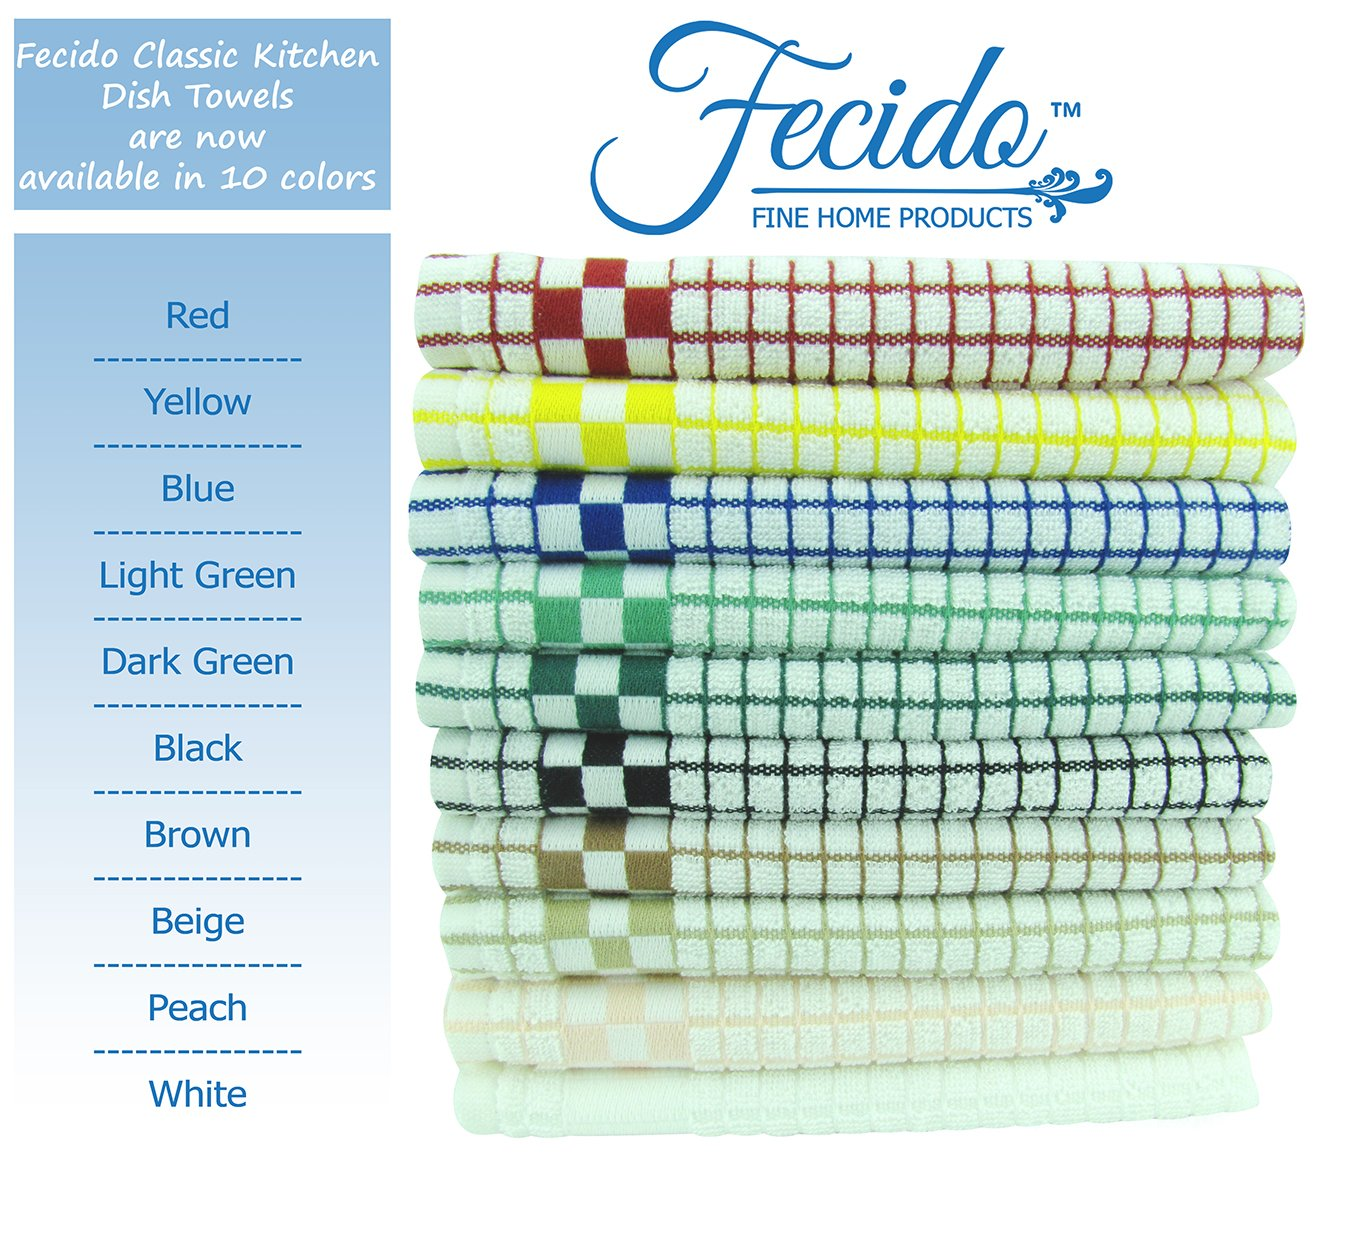 Amazon.com: Fecido Classic Kitchen Dish Towels Set - Heavy Duty ...